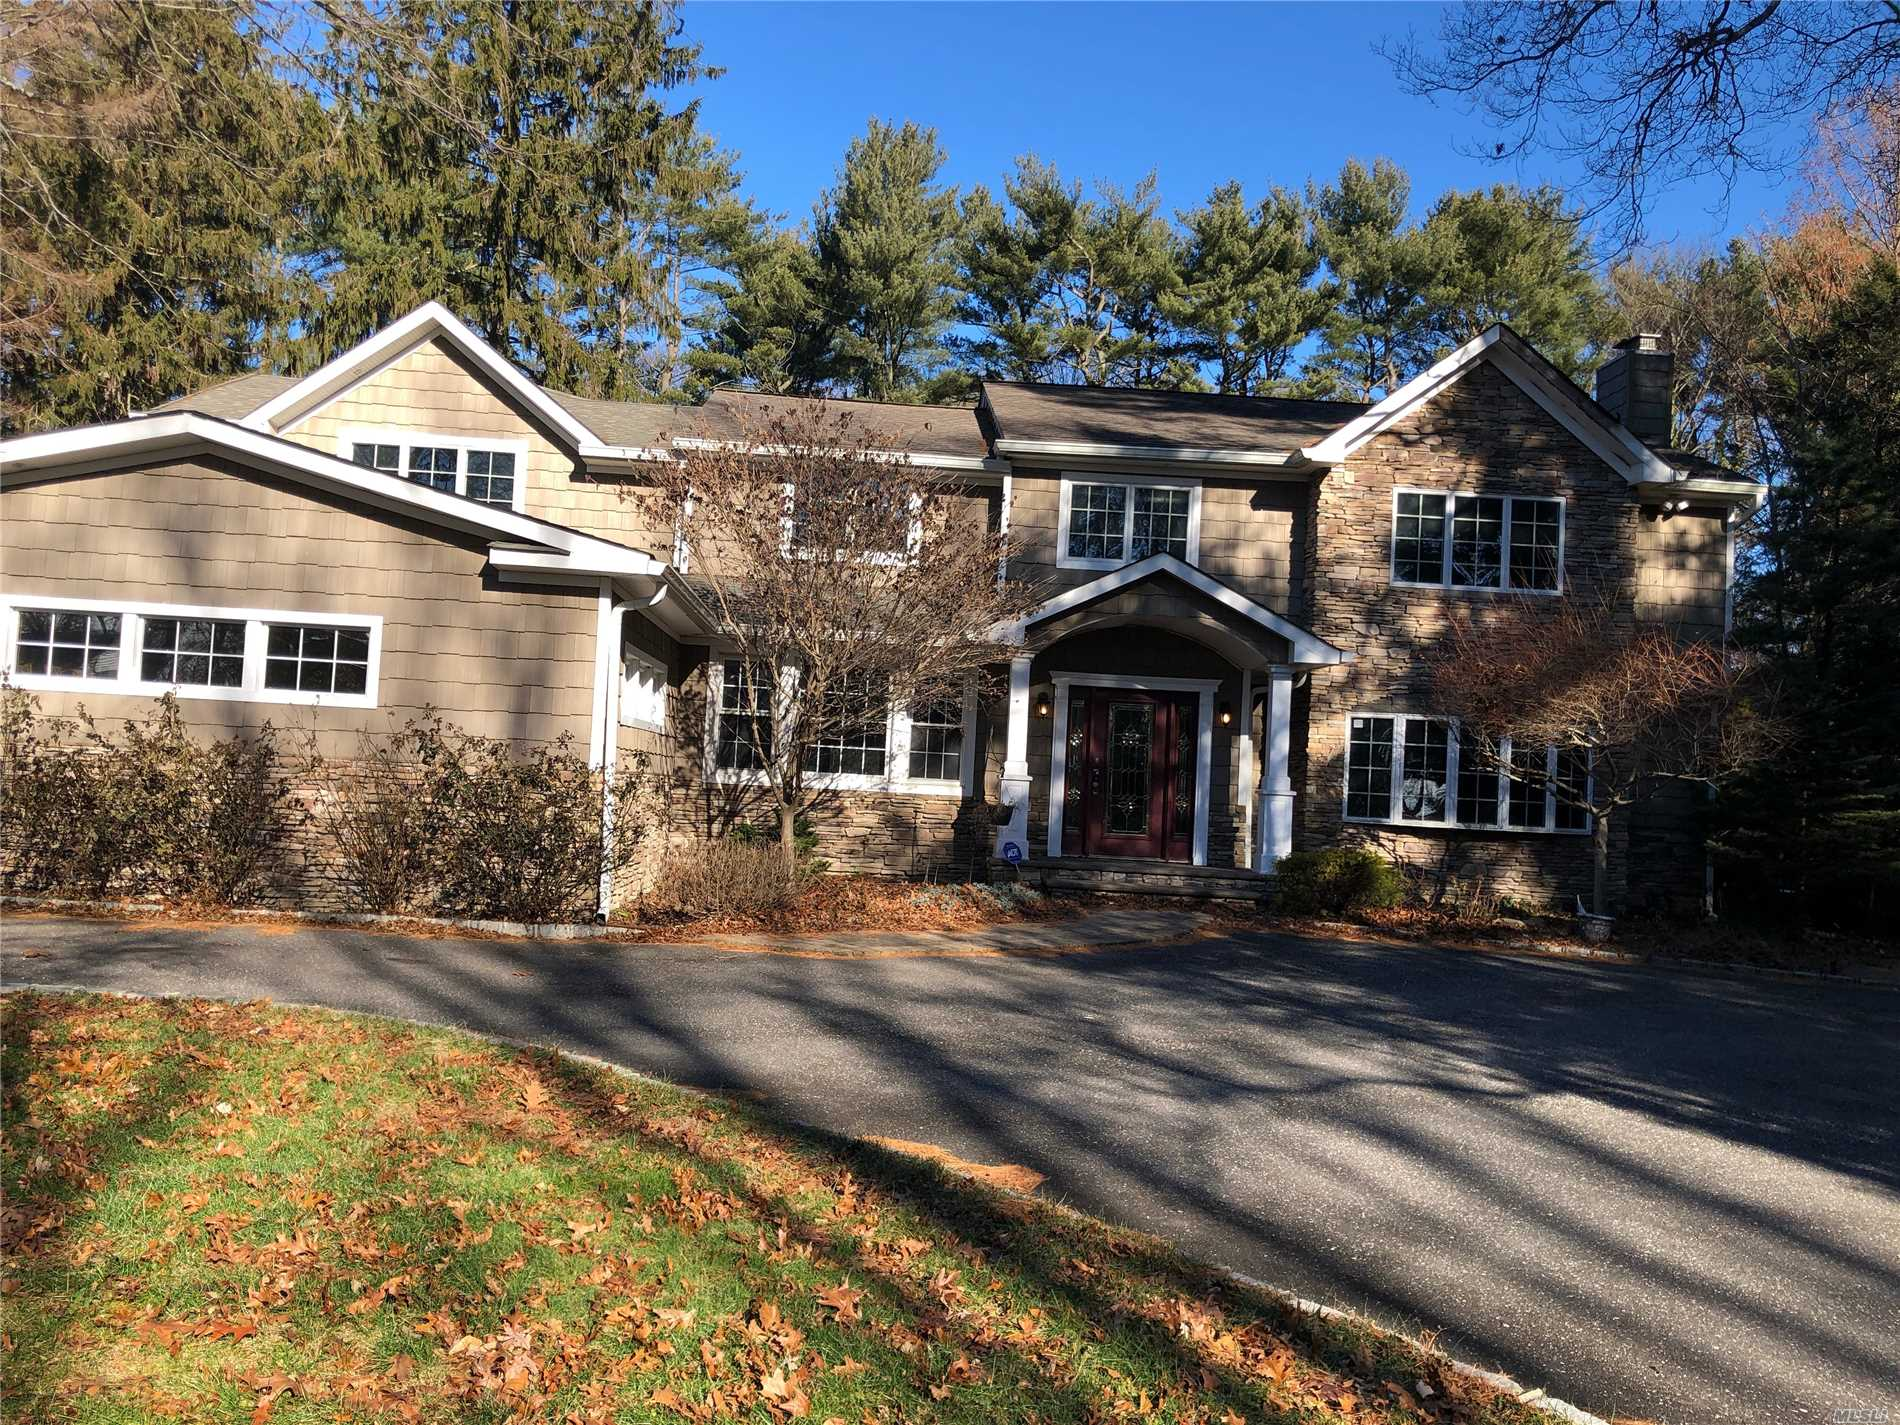 Beautiful 5 Bedroom 4 Bathroom Colonial With Beautiful Yard And In Ground Pool Located On A Quite Dead End Street.  Amazing Neighborhood To Raise Your Family, Located In One Of The Best School Districts In The Country.